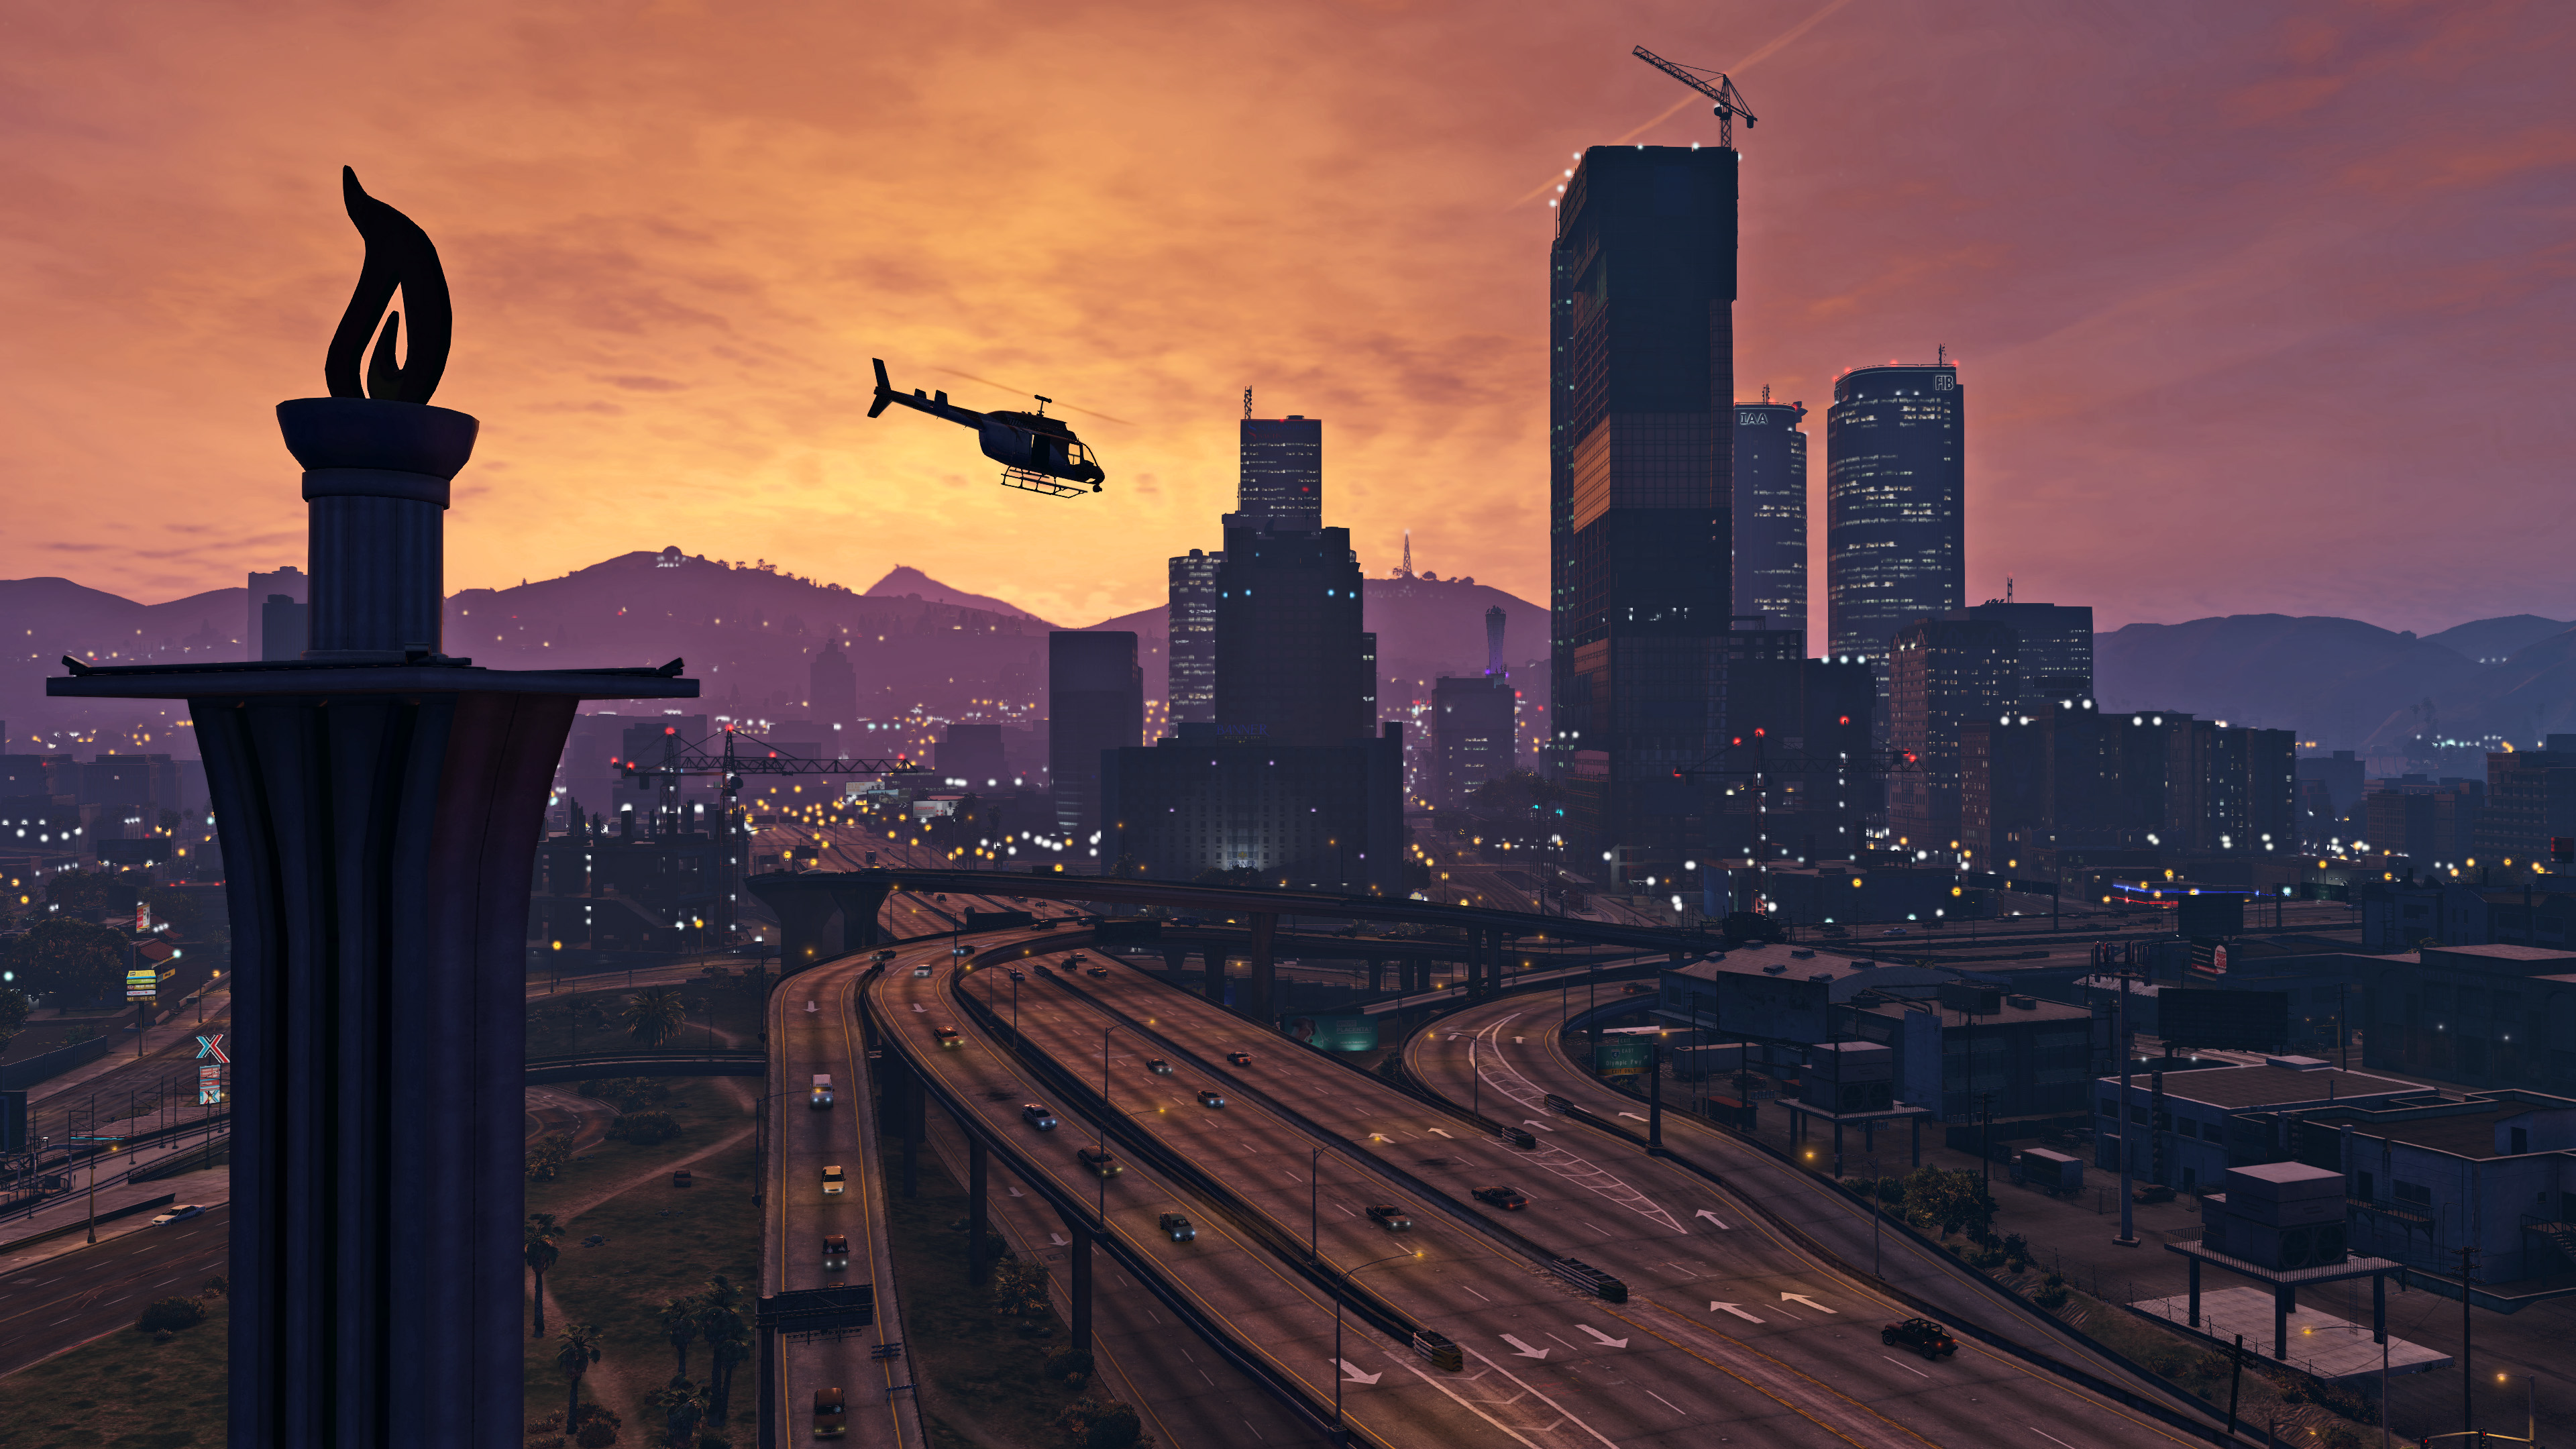 gta iv helicopter with Official Screenshots on Official Screenshots in addition Battle of Los Santos LTS furthermore 30659 Ducati Desmosedici Rr 2012 html further Watchdogs V Hacks Script Mod By Julionib also Watch.